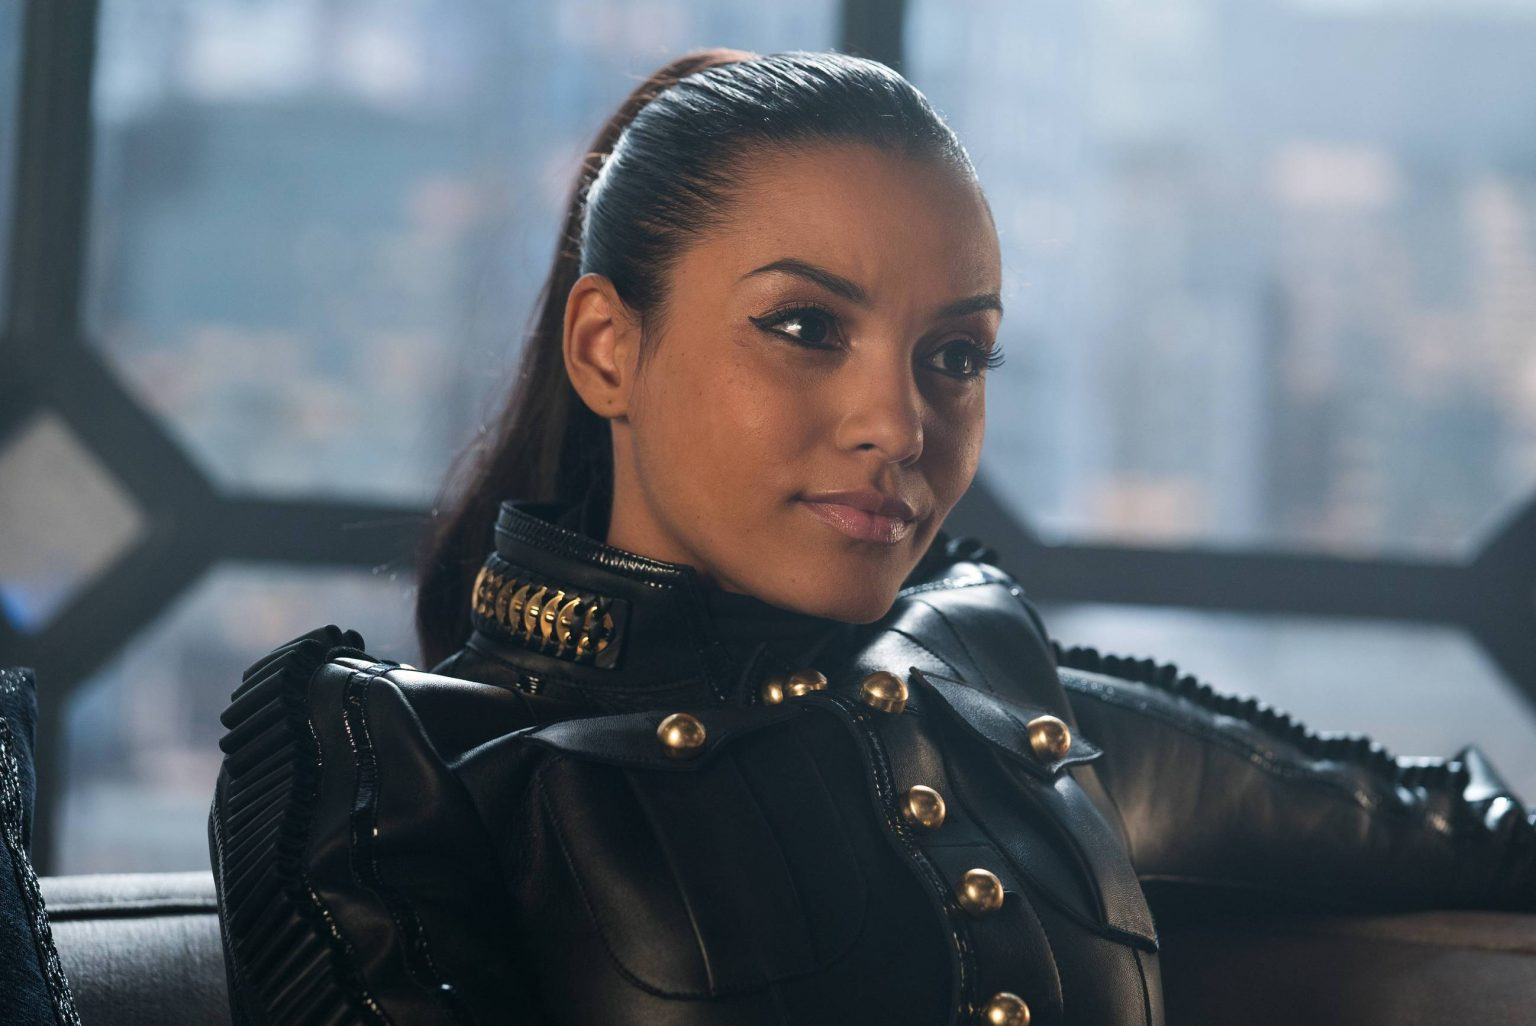 Jessica Lucas - All Body Measurements Including Boobs, Waist, Hips and More - Measurements Info